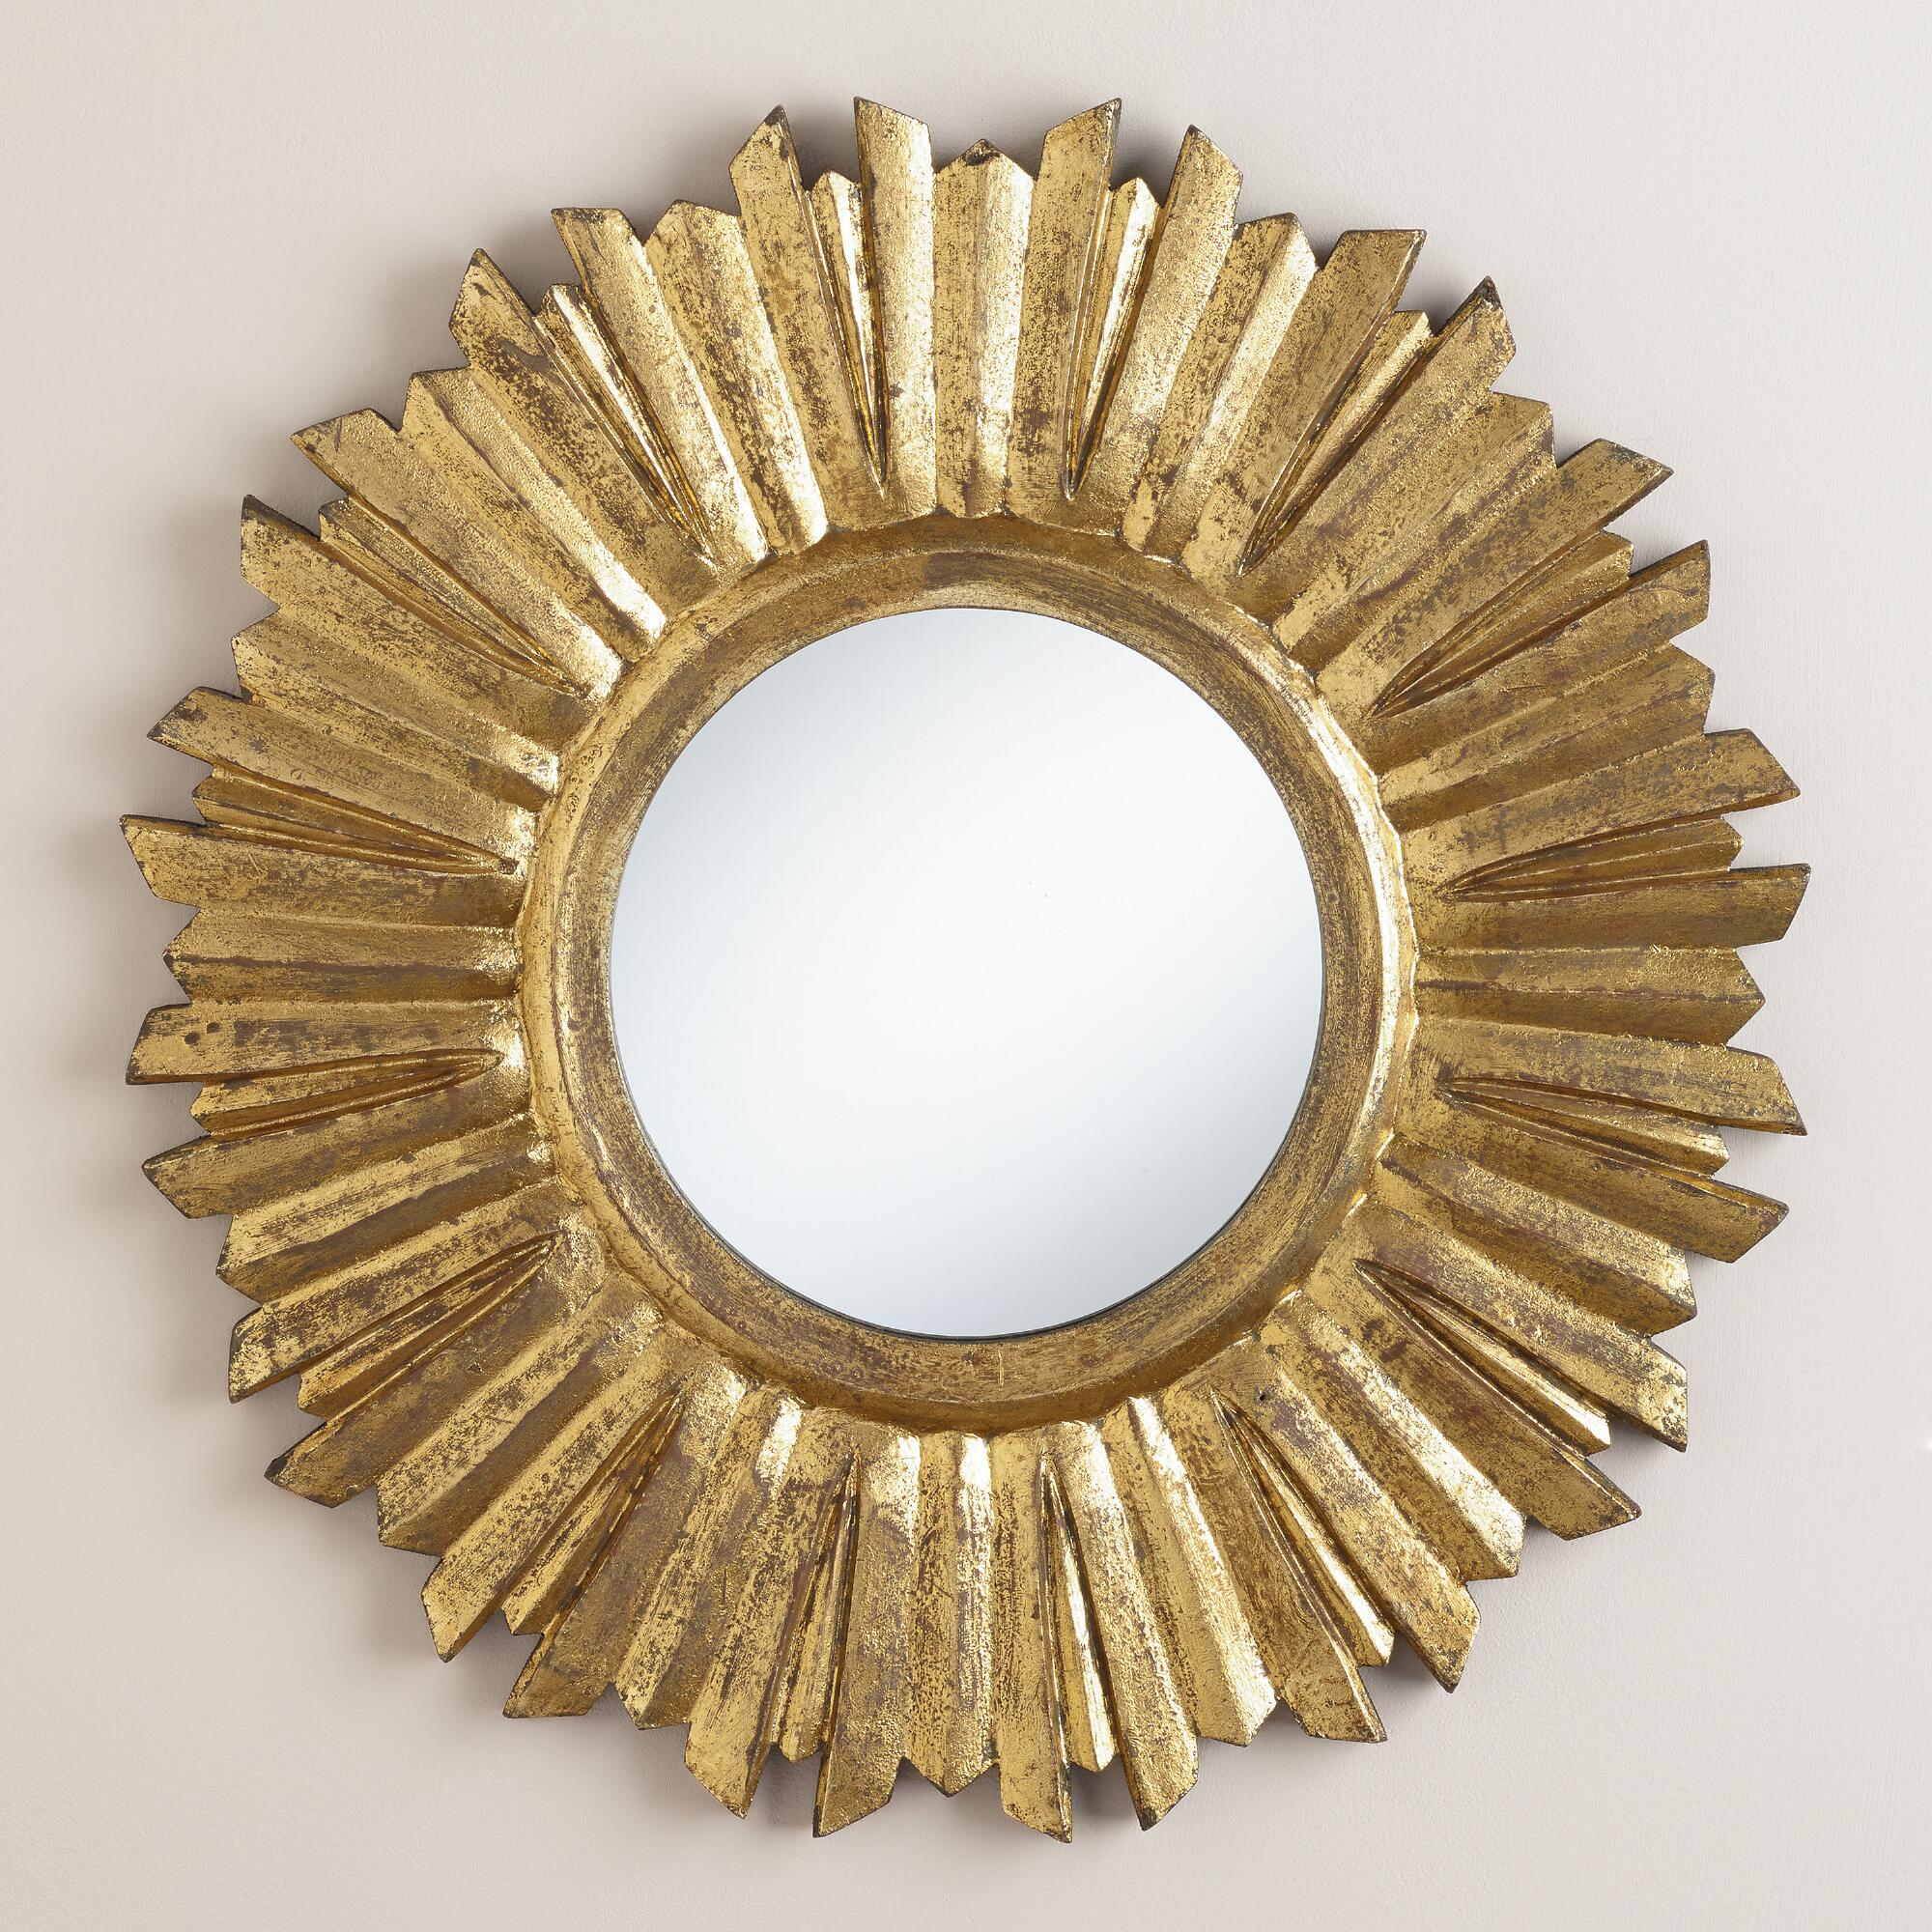 Small antique gold leila sunburst mirror world market for Decor mirror